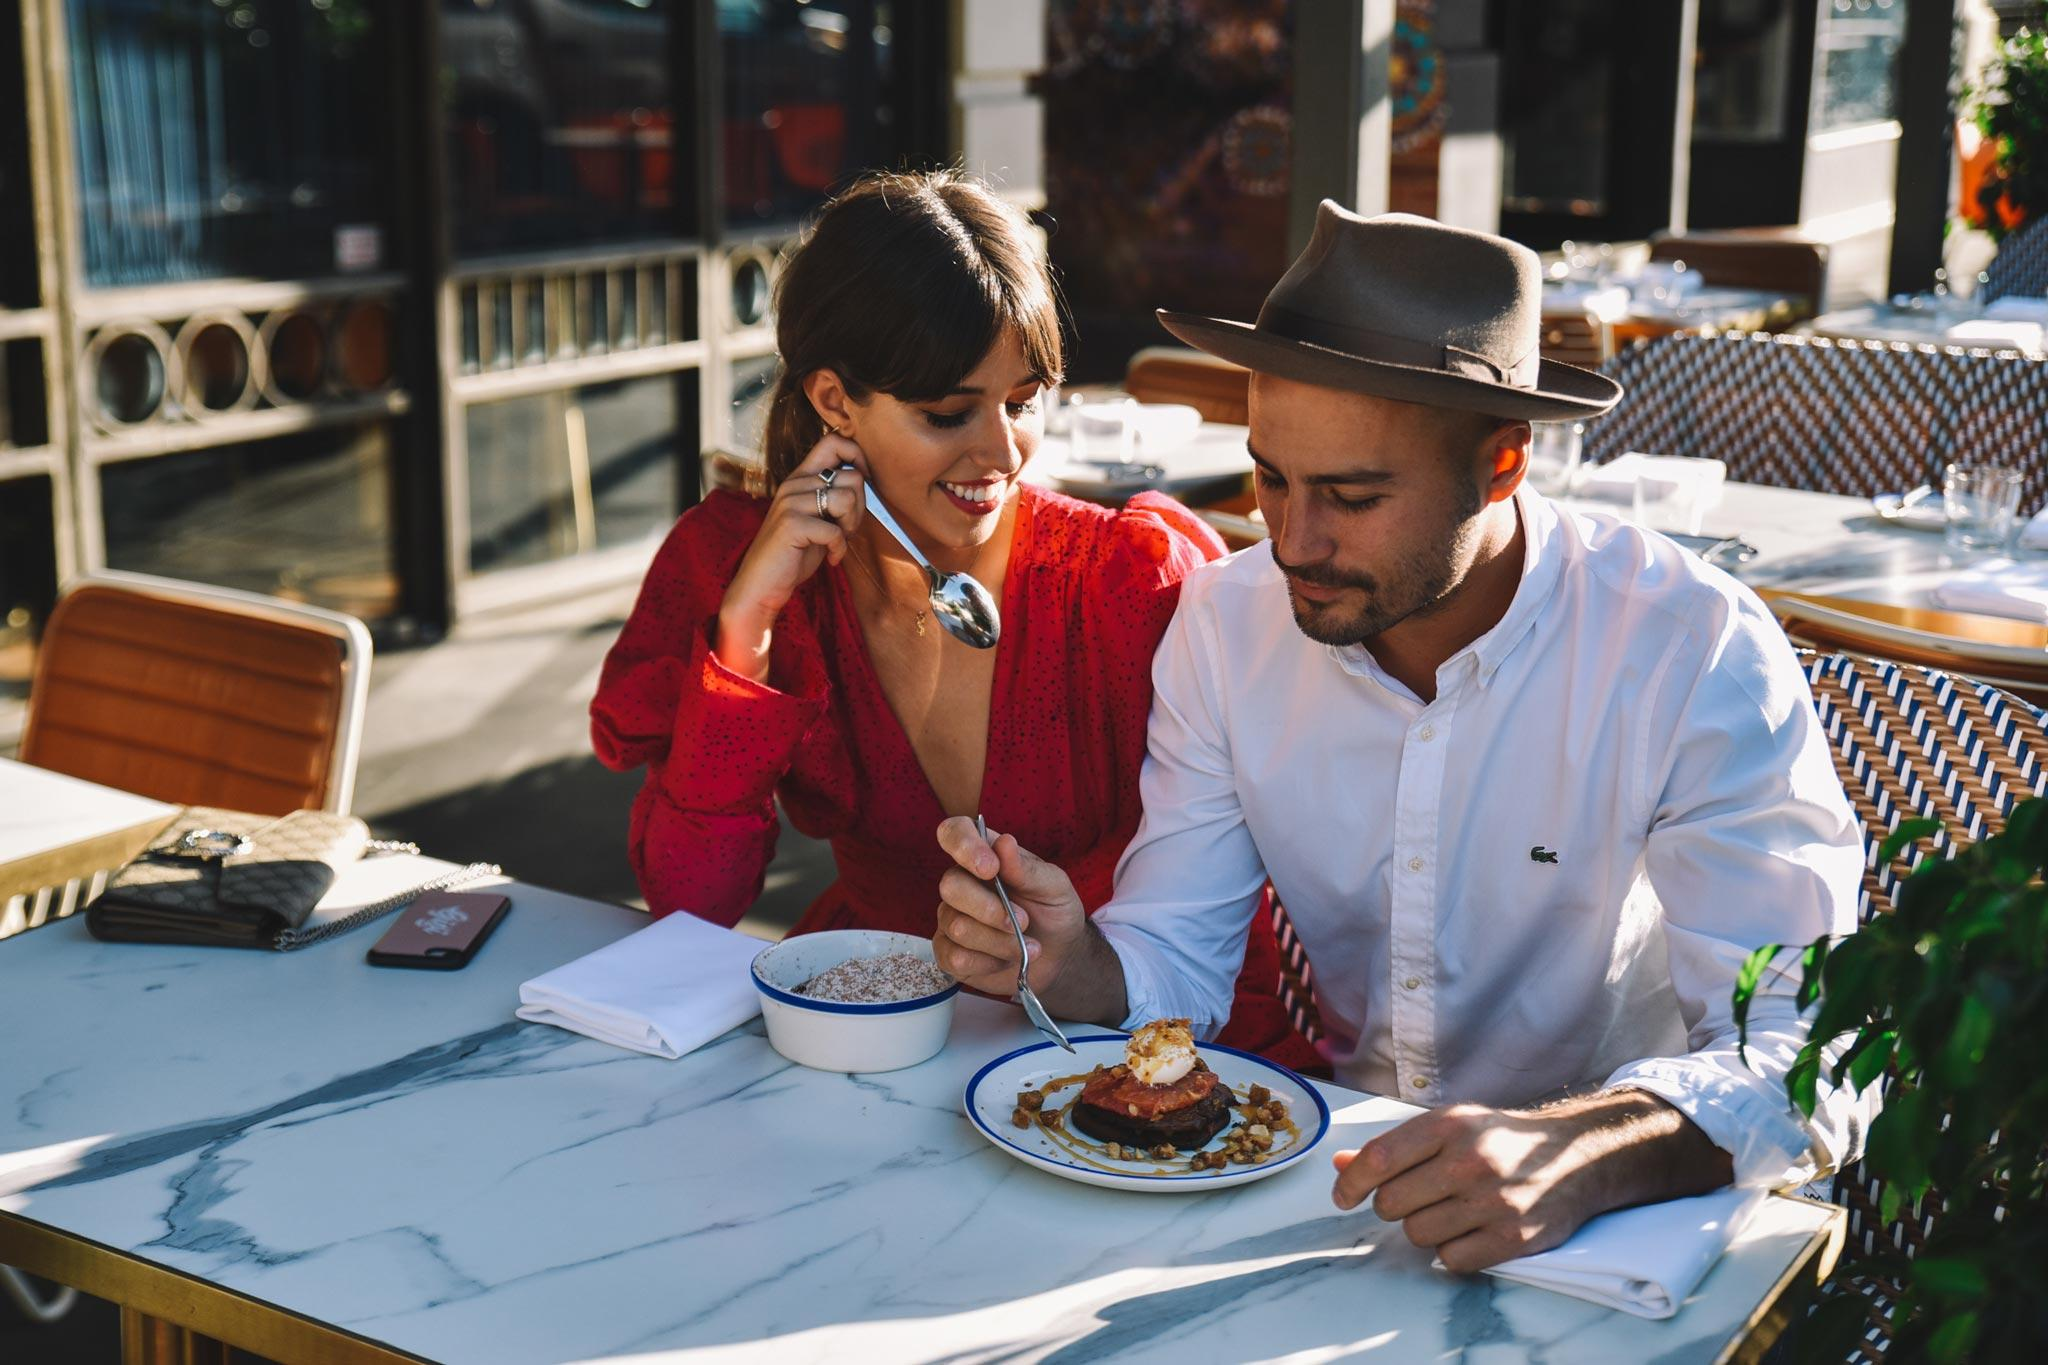 Date ideas in the city | City of Adelaide